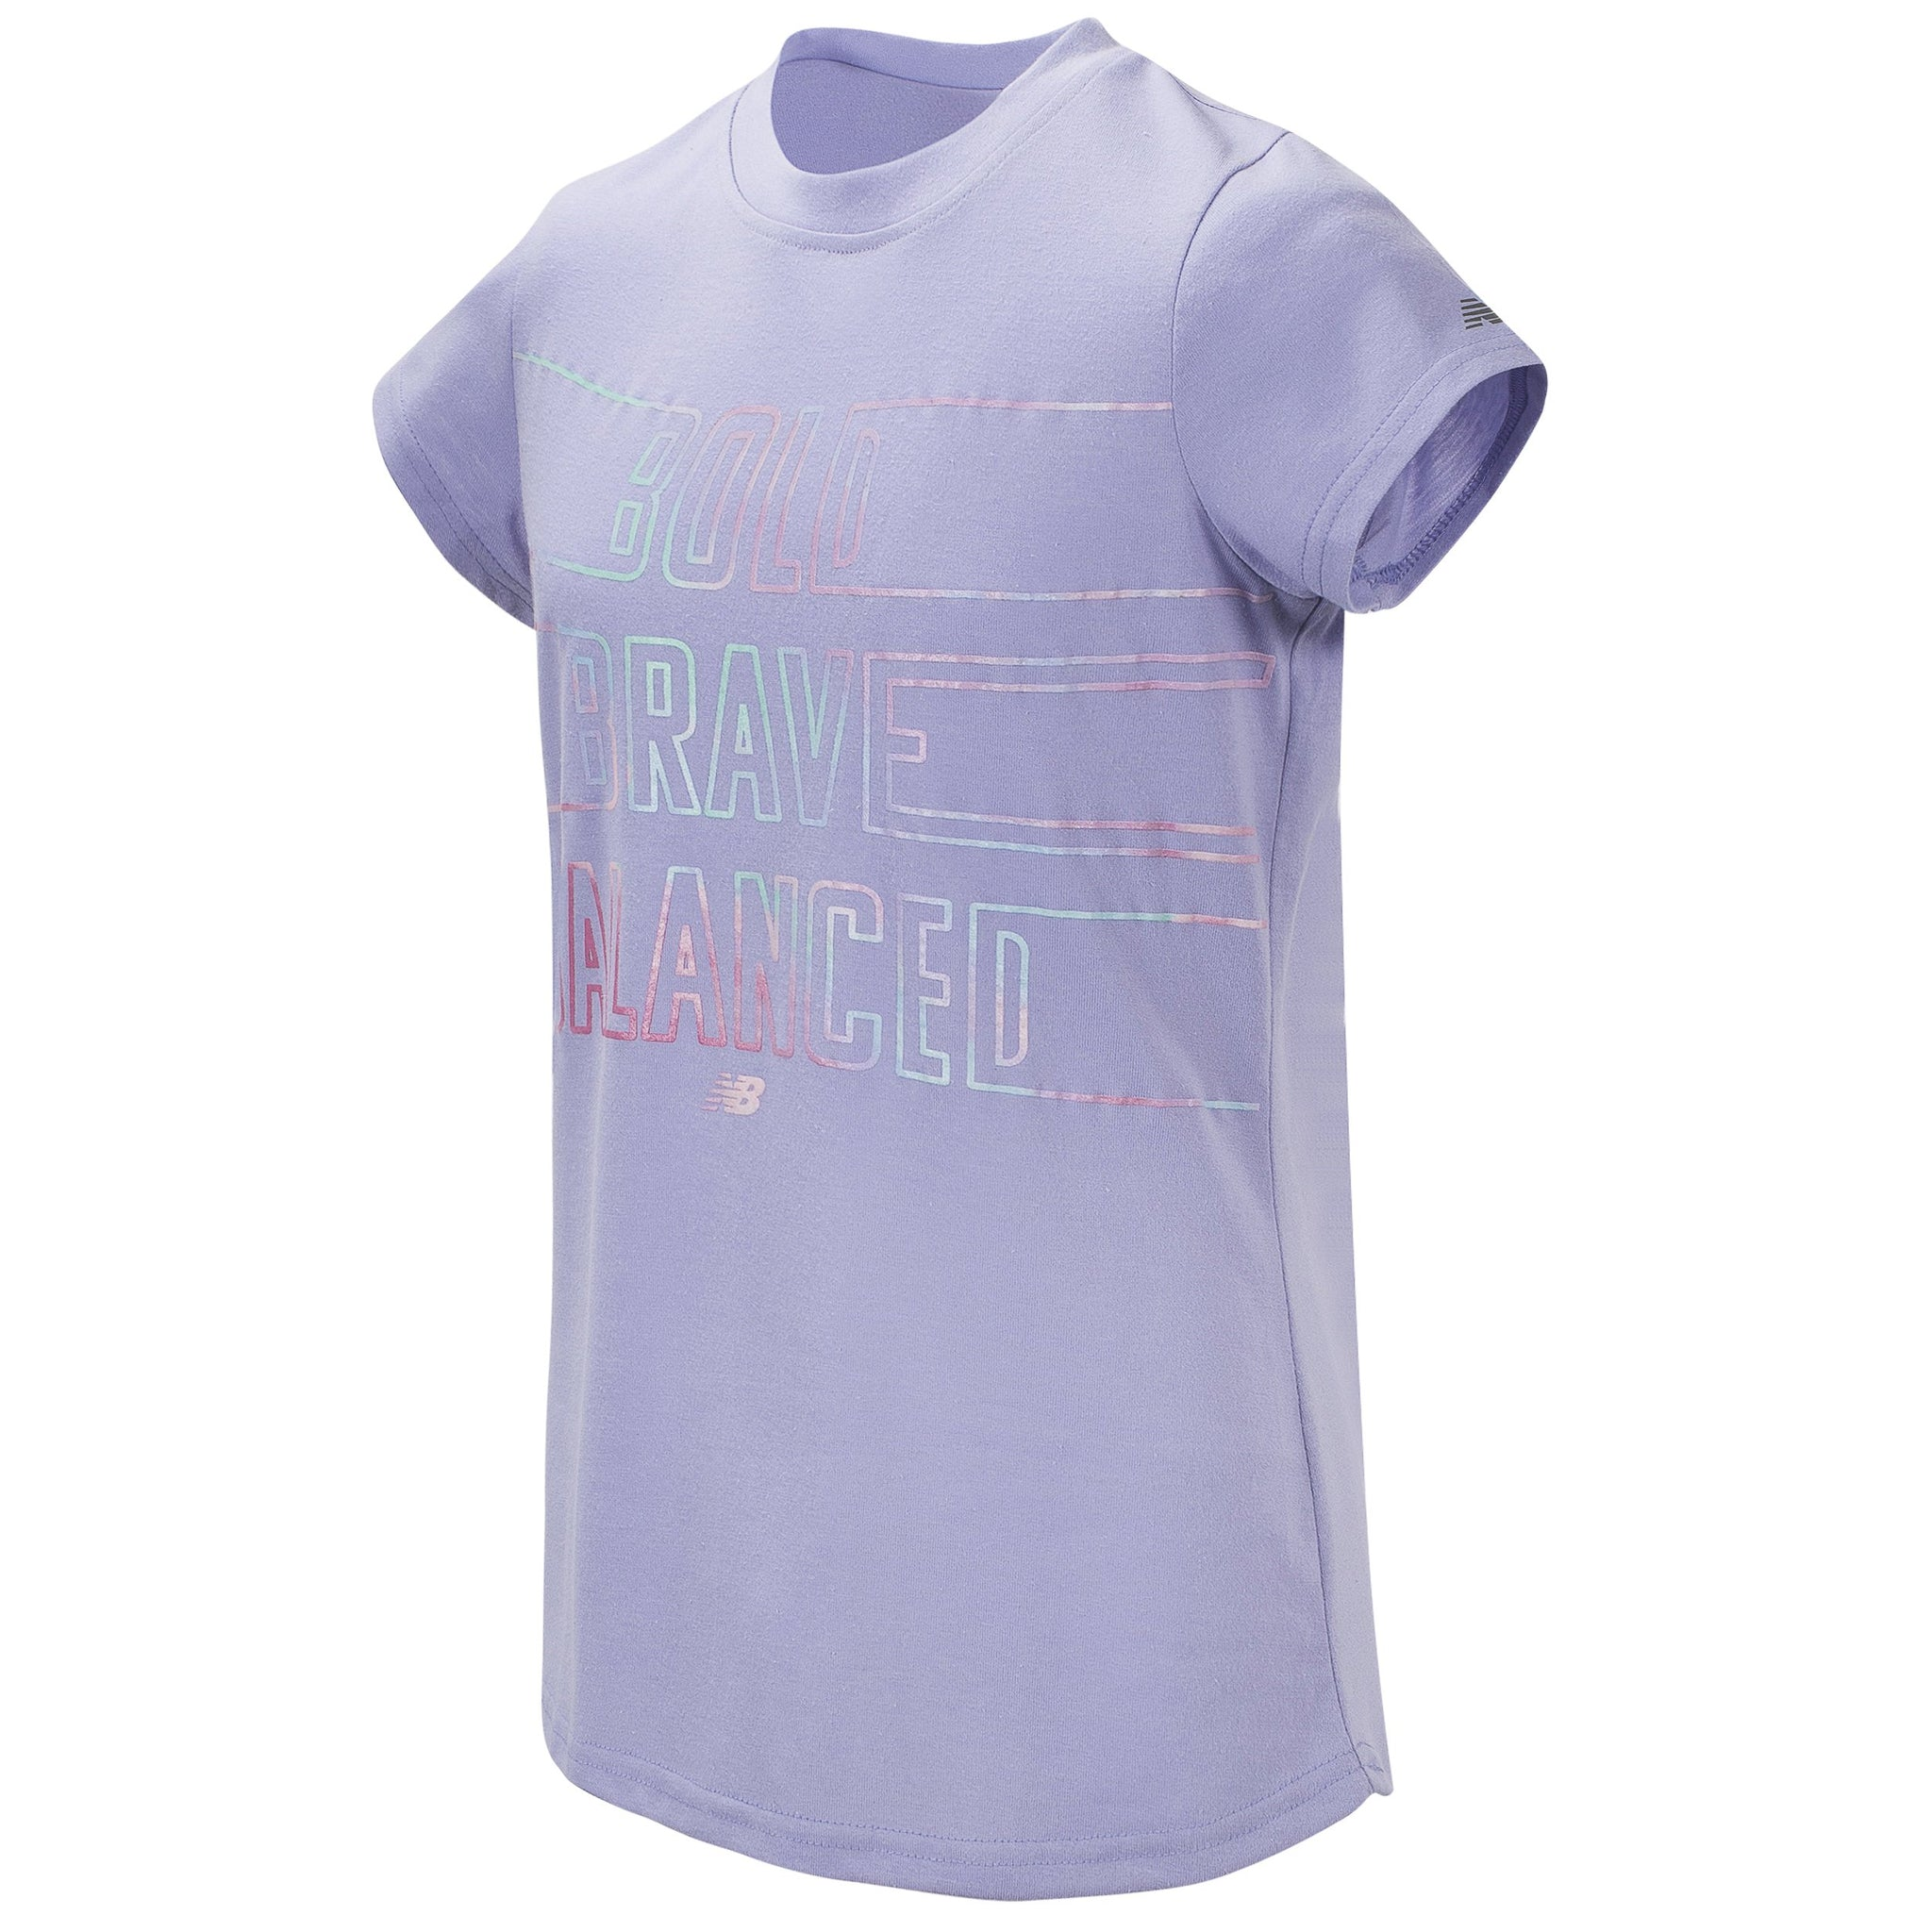 Girls' Clear Amethyst Short Sleeve Graphic Tee-Gerber Childrenswear